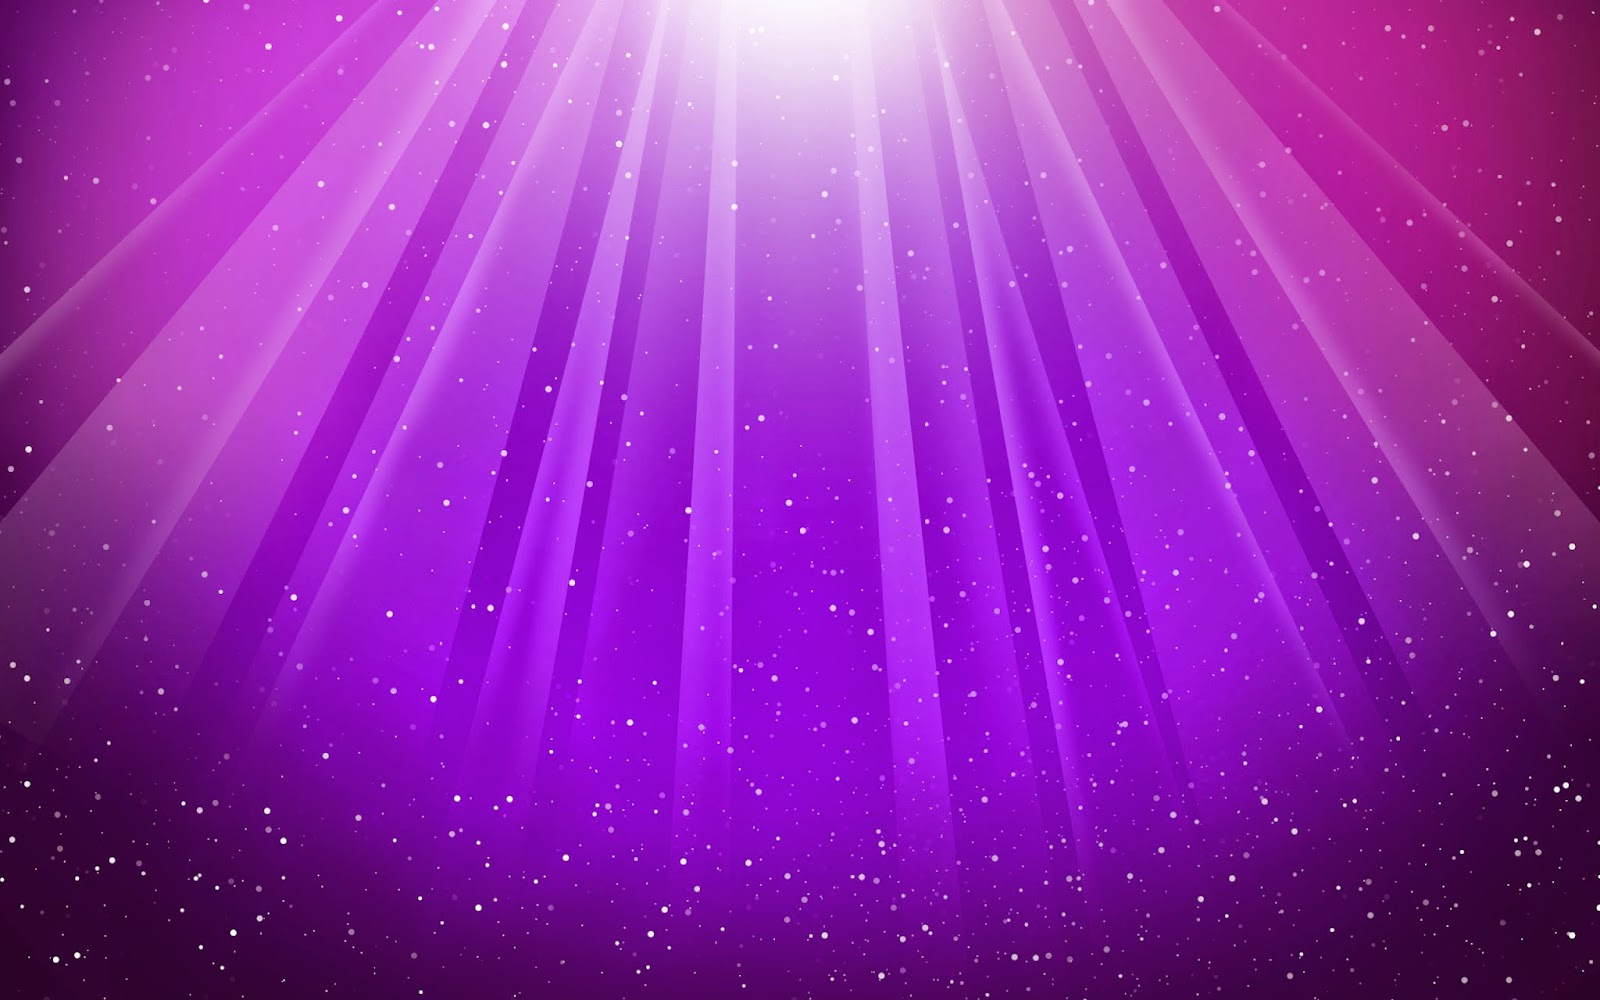 Light purple flower background